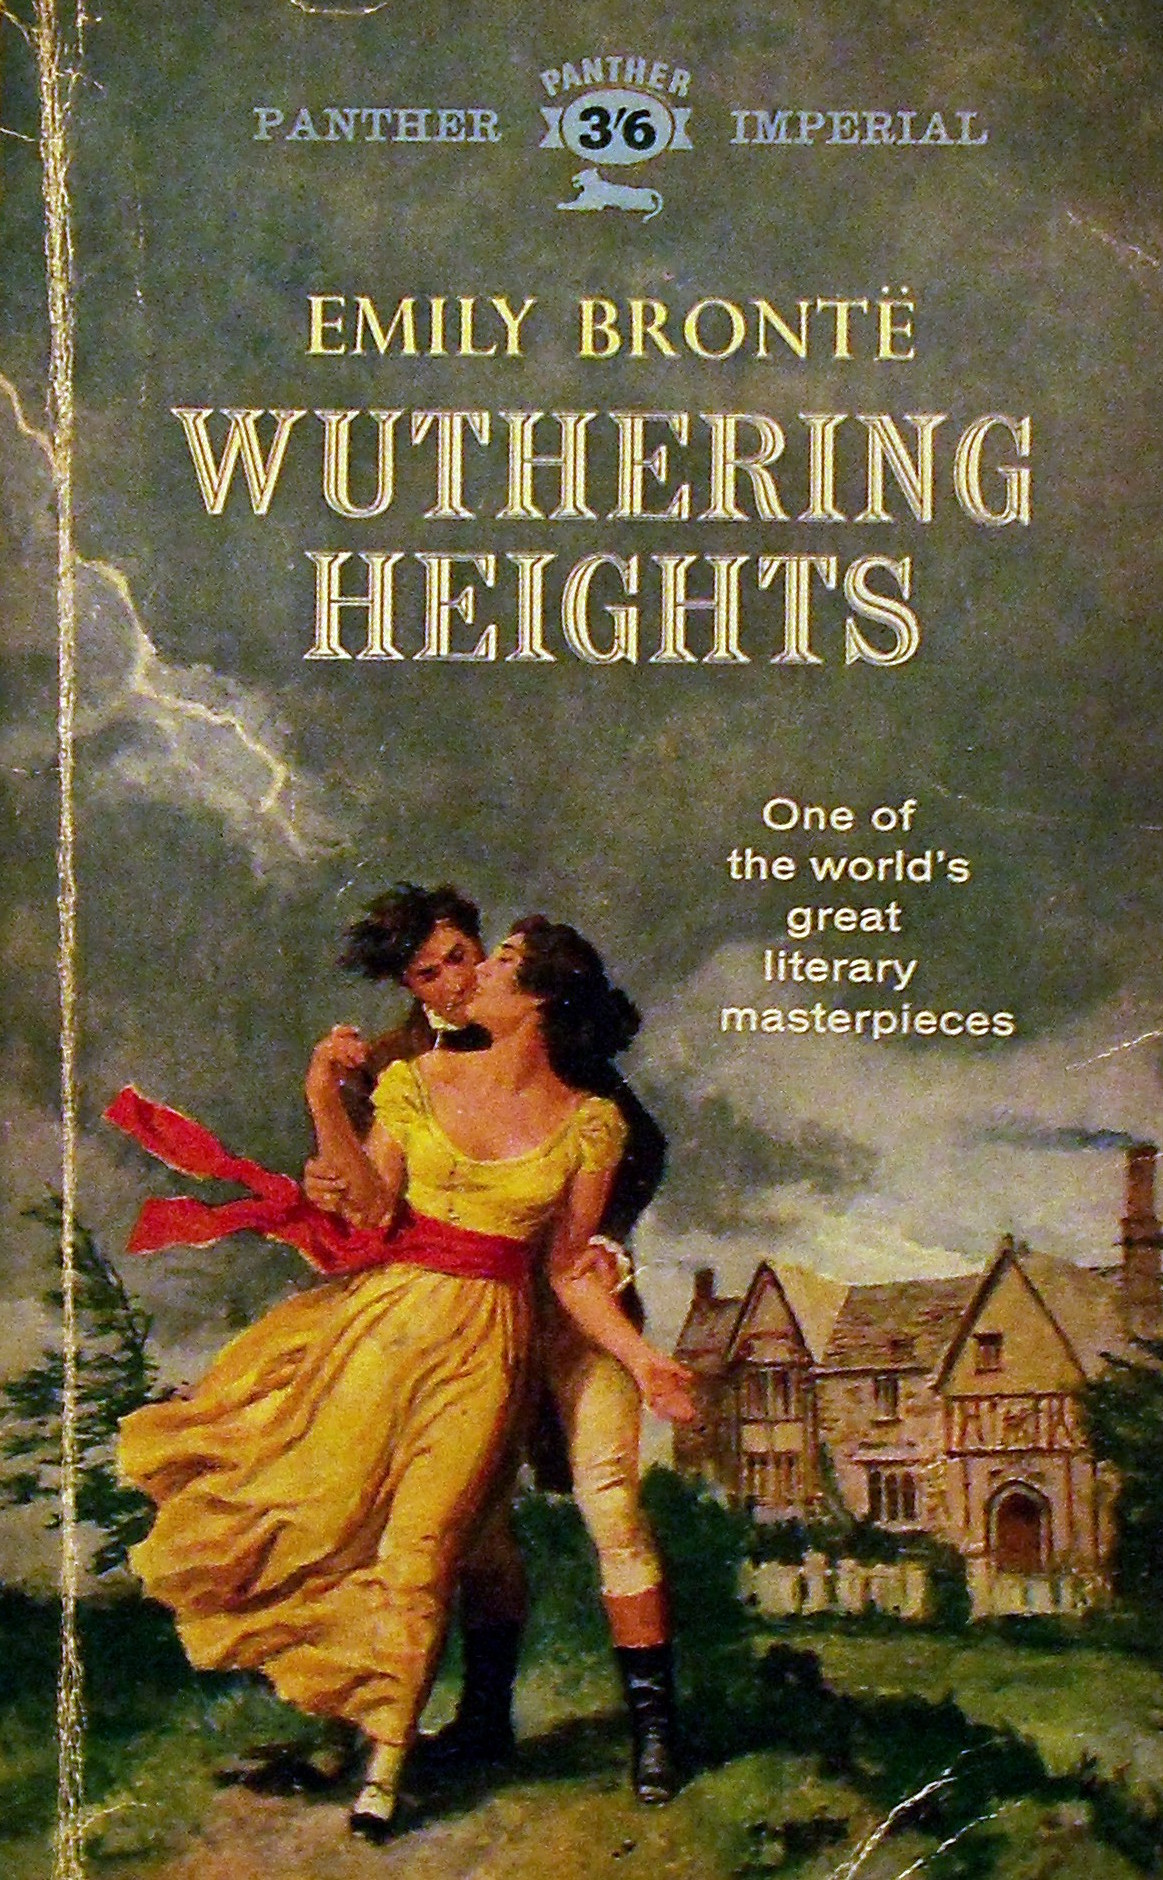 gothic and romantic themes in wuthering heights by emily bronte The paperback of the wuthering heights by emily brontë brings to life bronte's gothic romance and provides but not the romantic love of.